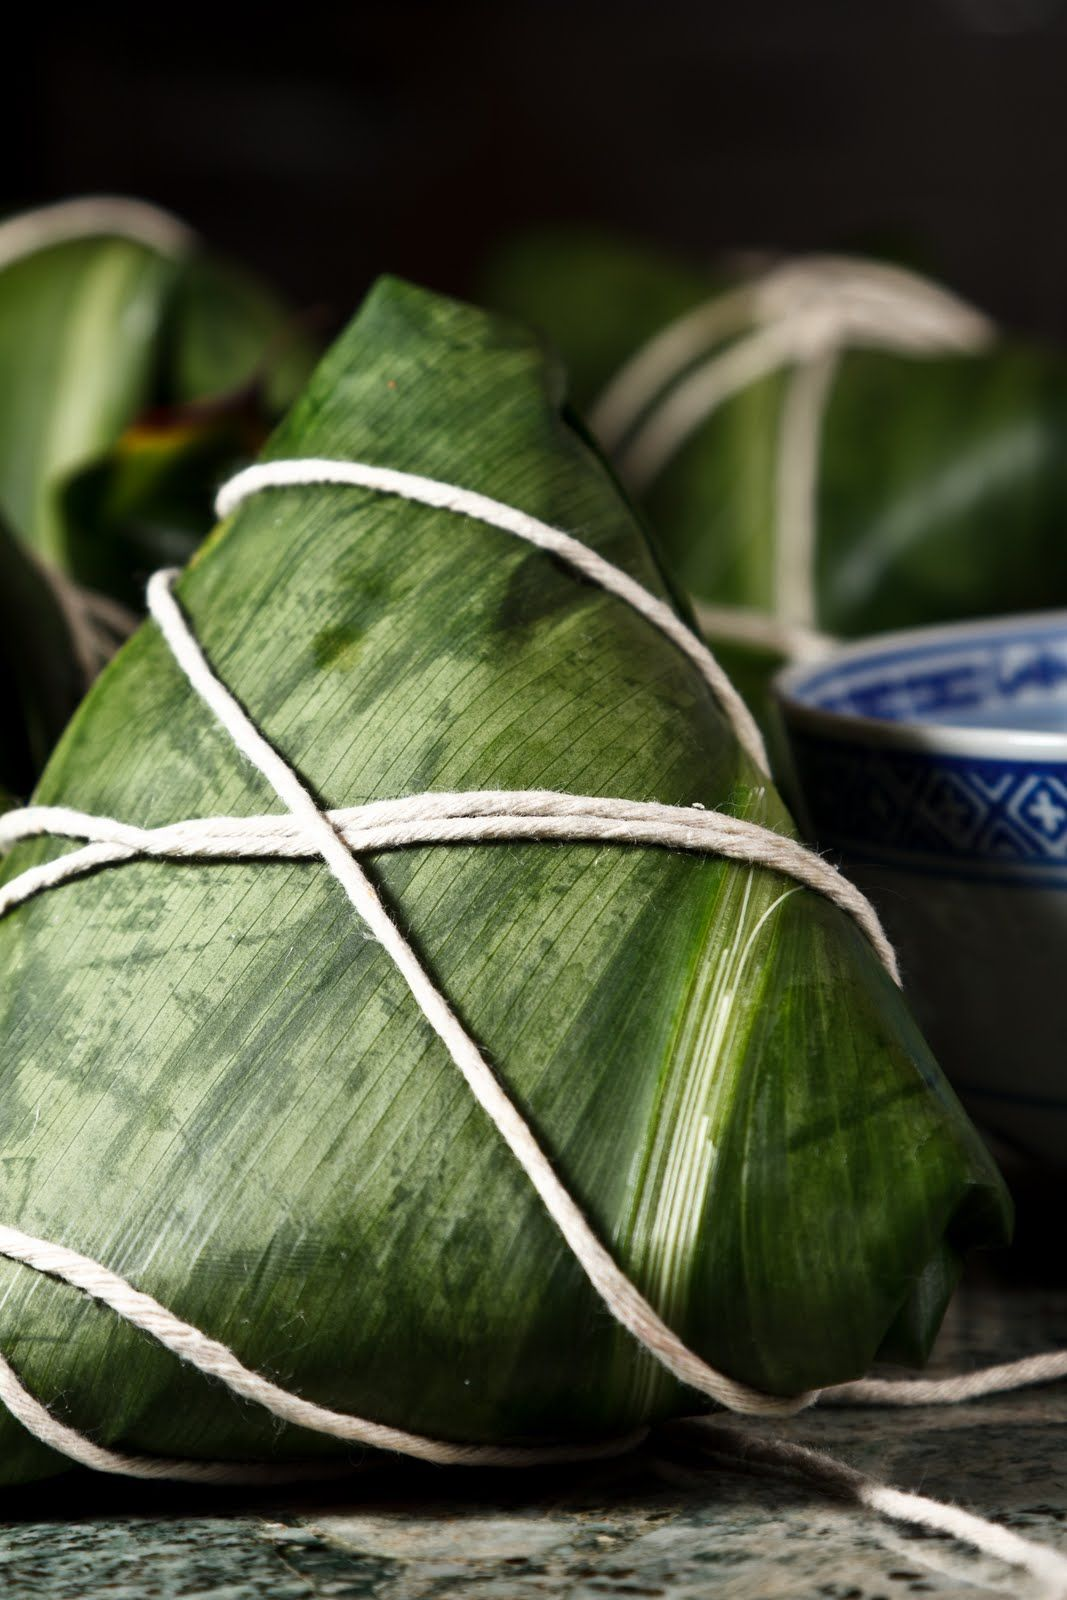 Hawaiian joong using blanched ti leaves. I'm a fan of mung bean, not black eyed peas, but it's slightly less easy to get a hold of.